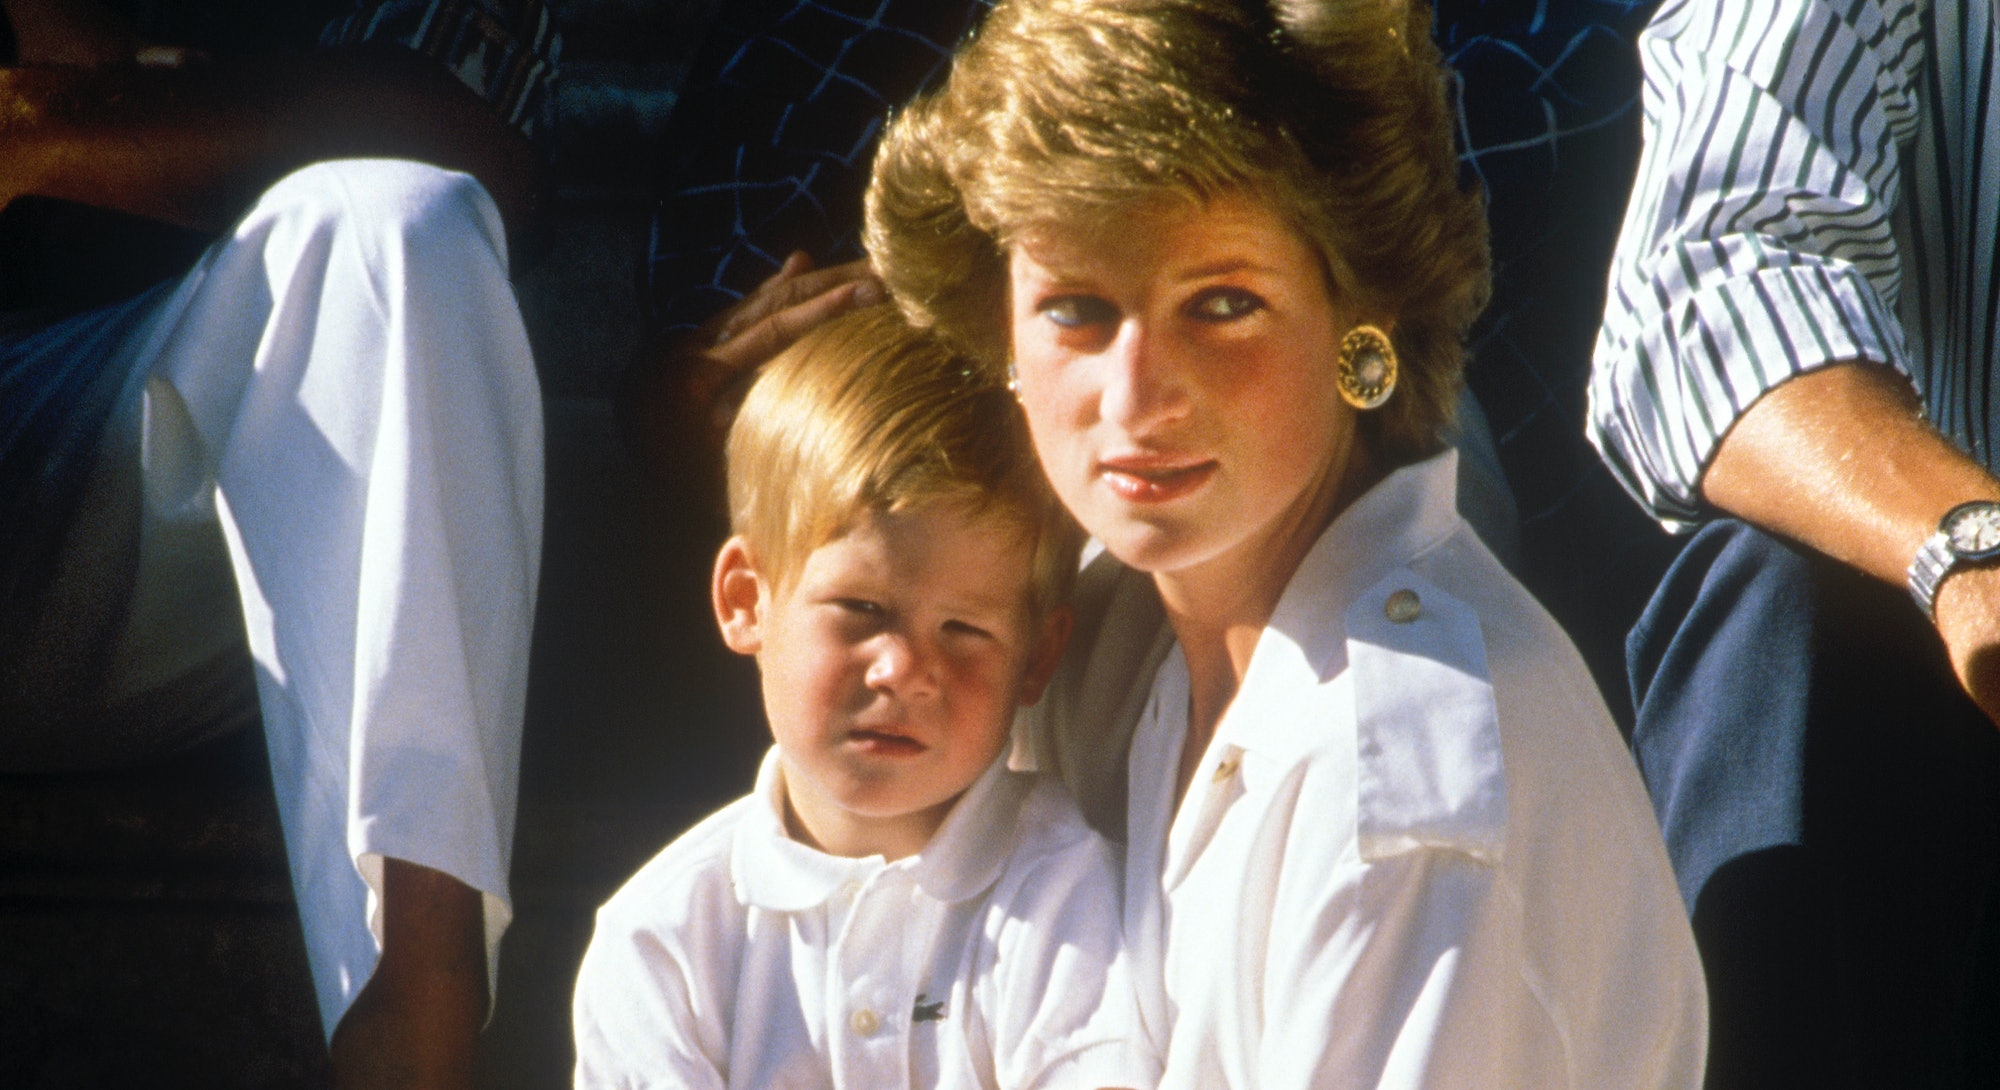 Princess Diana has shared many inspiring quotes on being a mom to Prince Harry and Prince William.